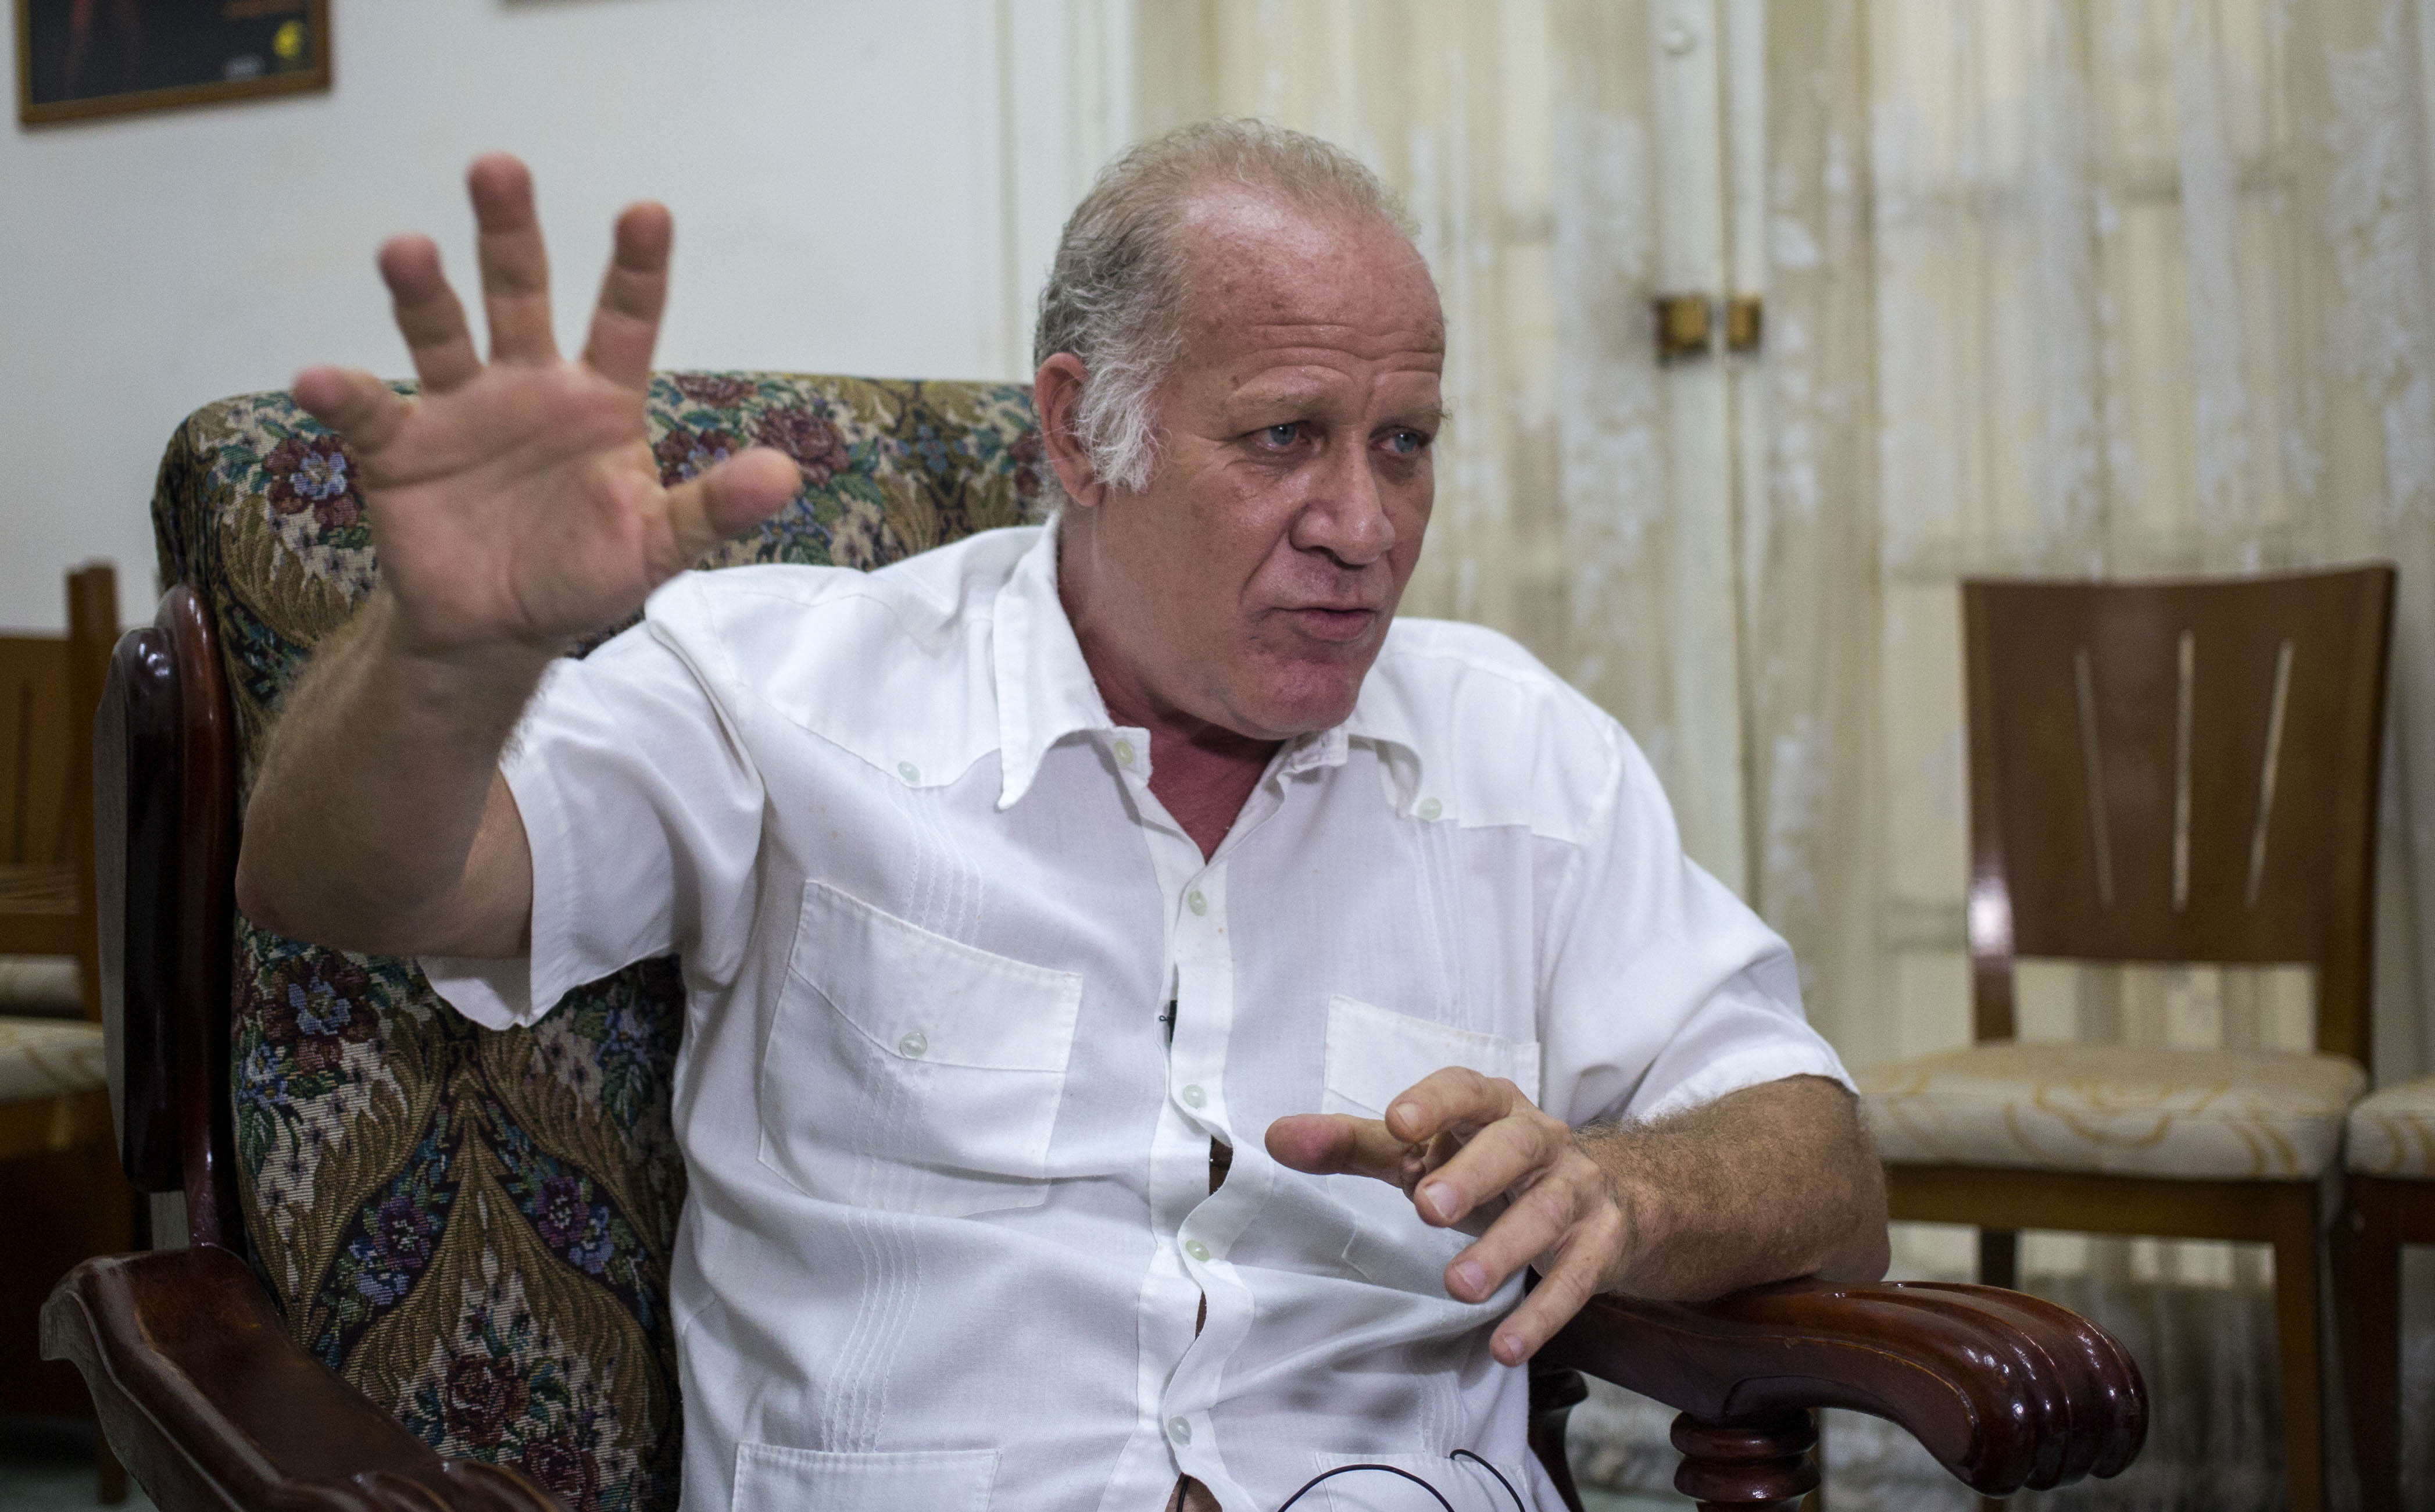 In this Dec. 4, 2018 photo, Vice Minister of Culture Fernando Rojas gives an interview in Havana, Cuba. Rojas says that Cuba is softening the impact of a heavily criticized new law that would have given government inspectors power to shut down any exhibition or performance deemed to violate the country's socialist revolutionary values. (AP Photo/Desmond Boylan)